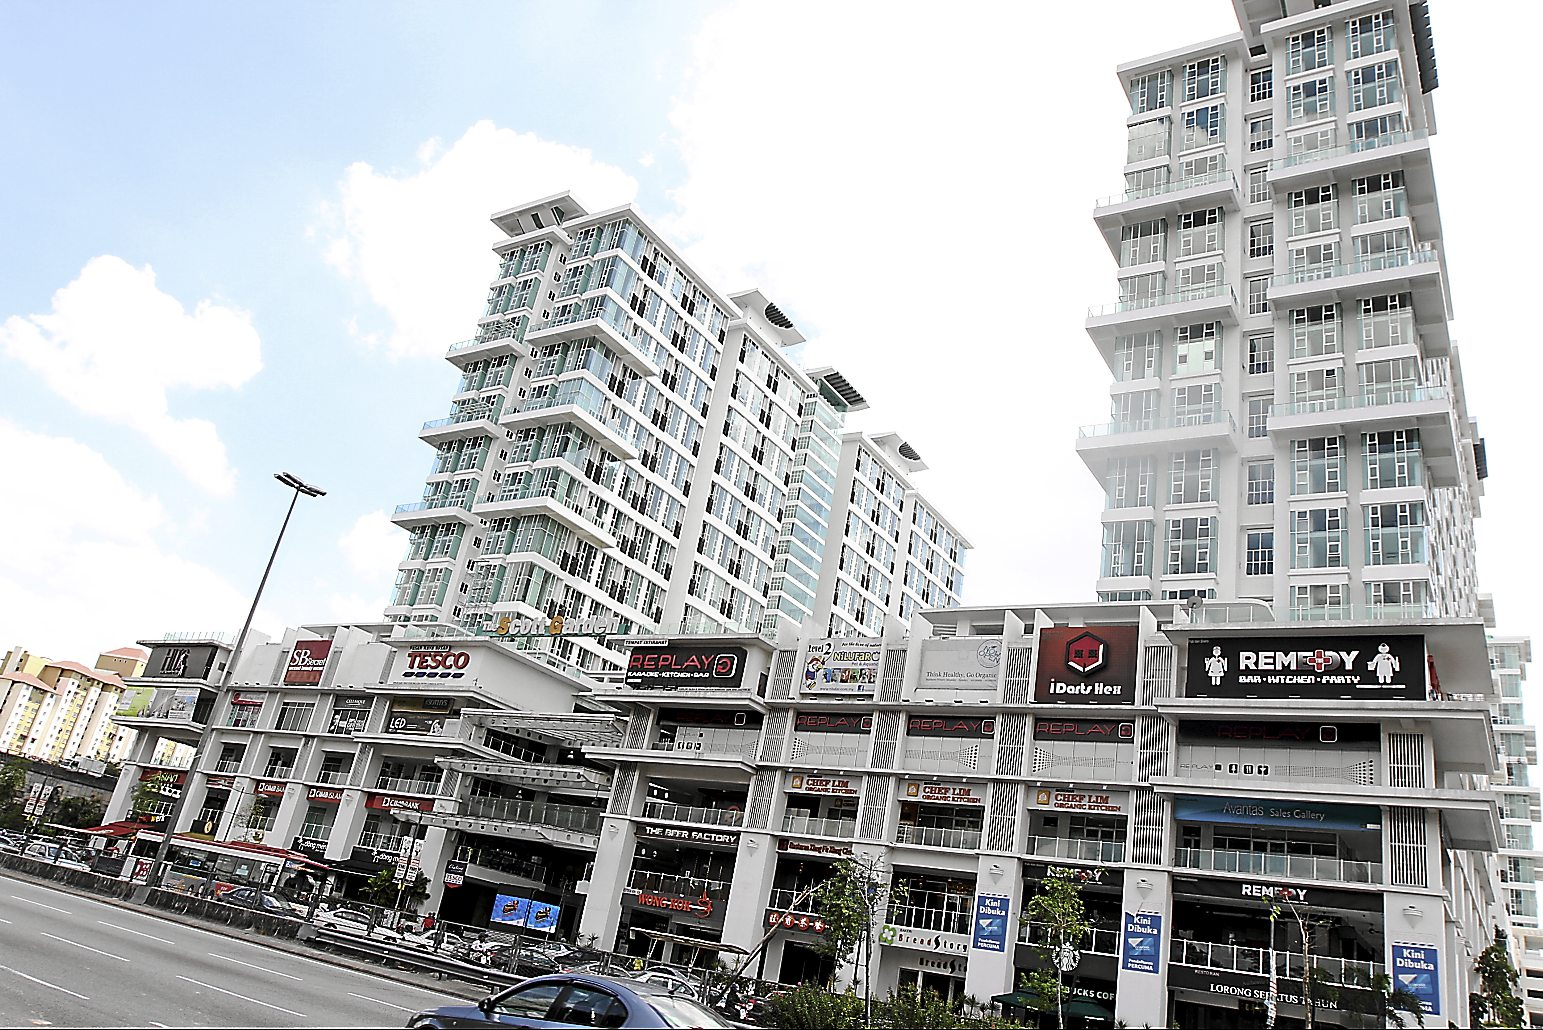 The Scot Garden Old Klang Road is yet to be completed. Planners predict the congestion will worsen once it is fully occupied by tenants and owners.